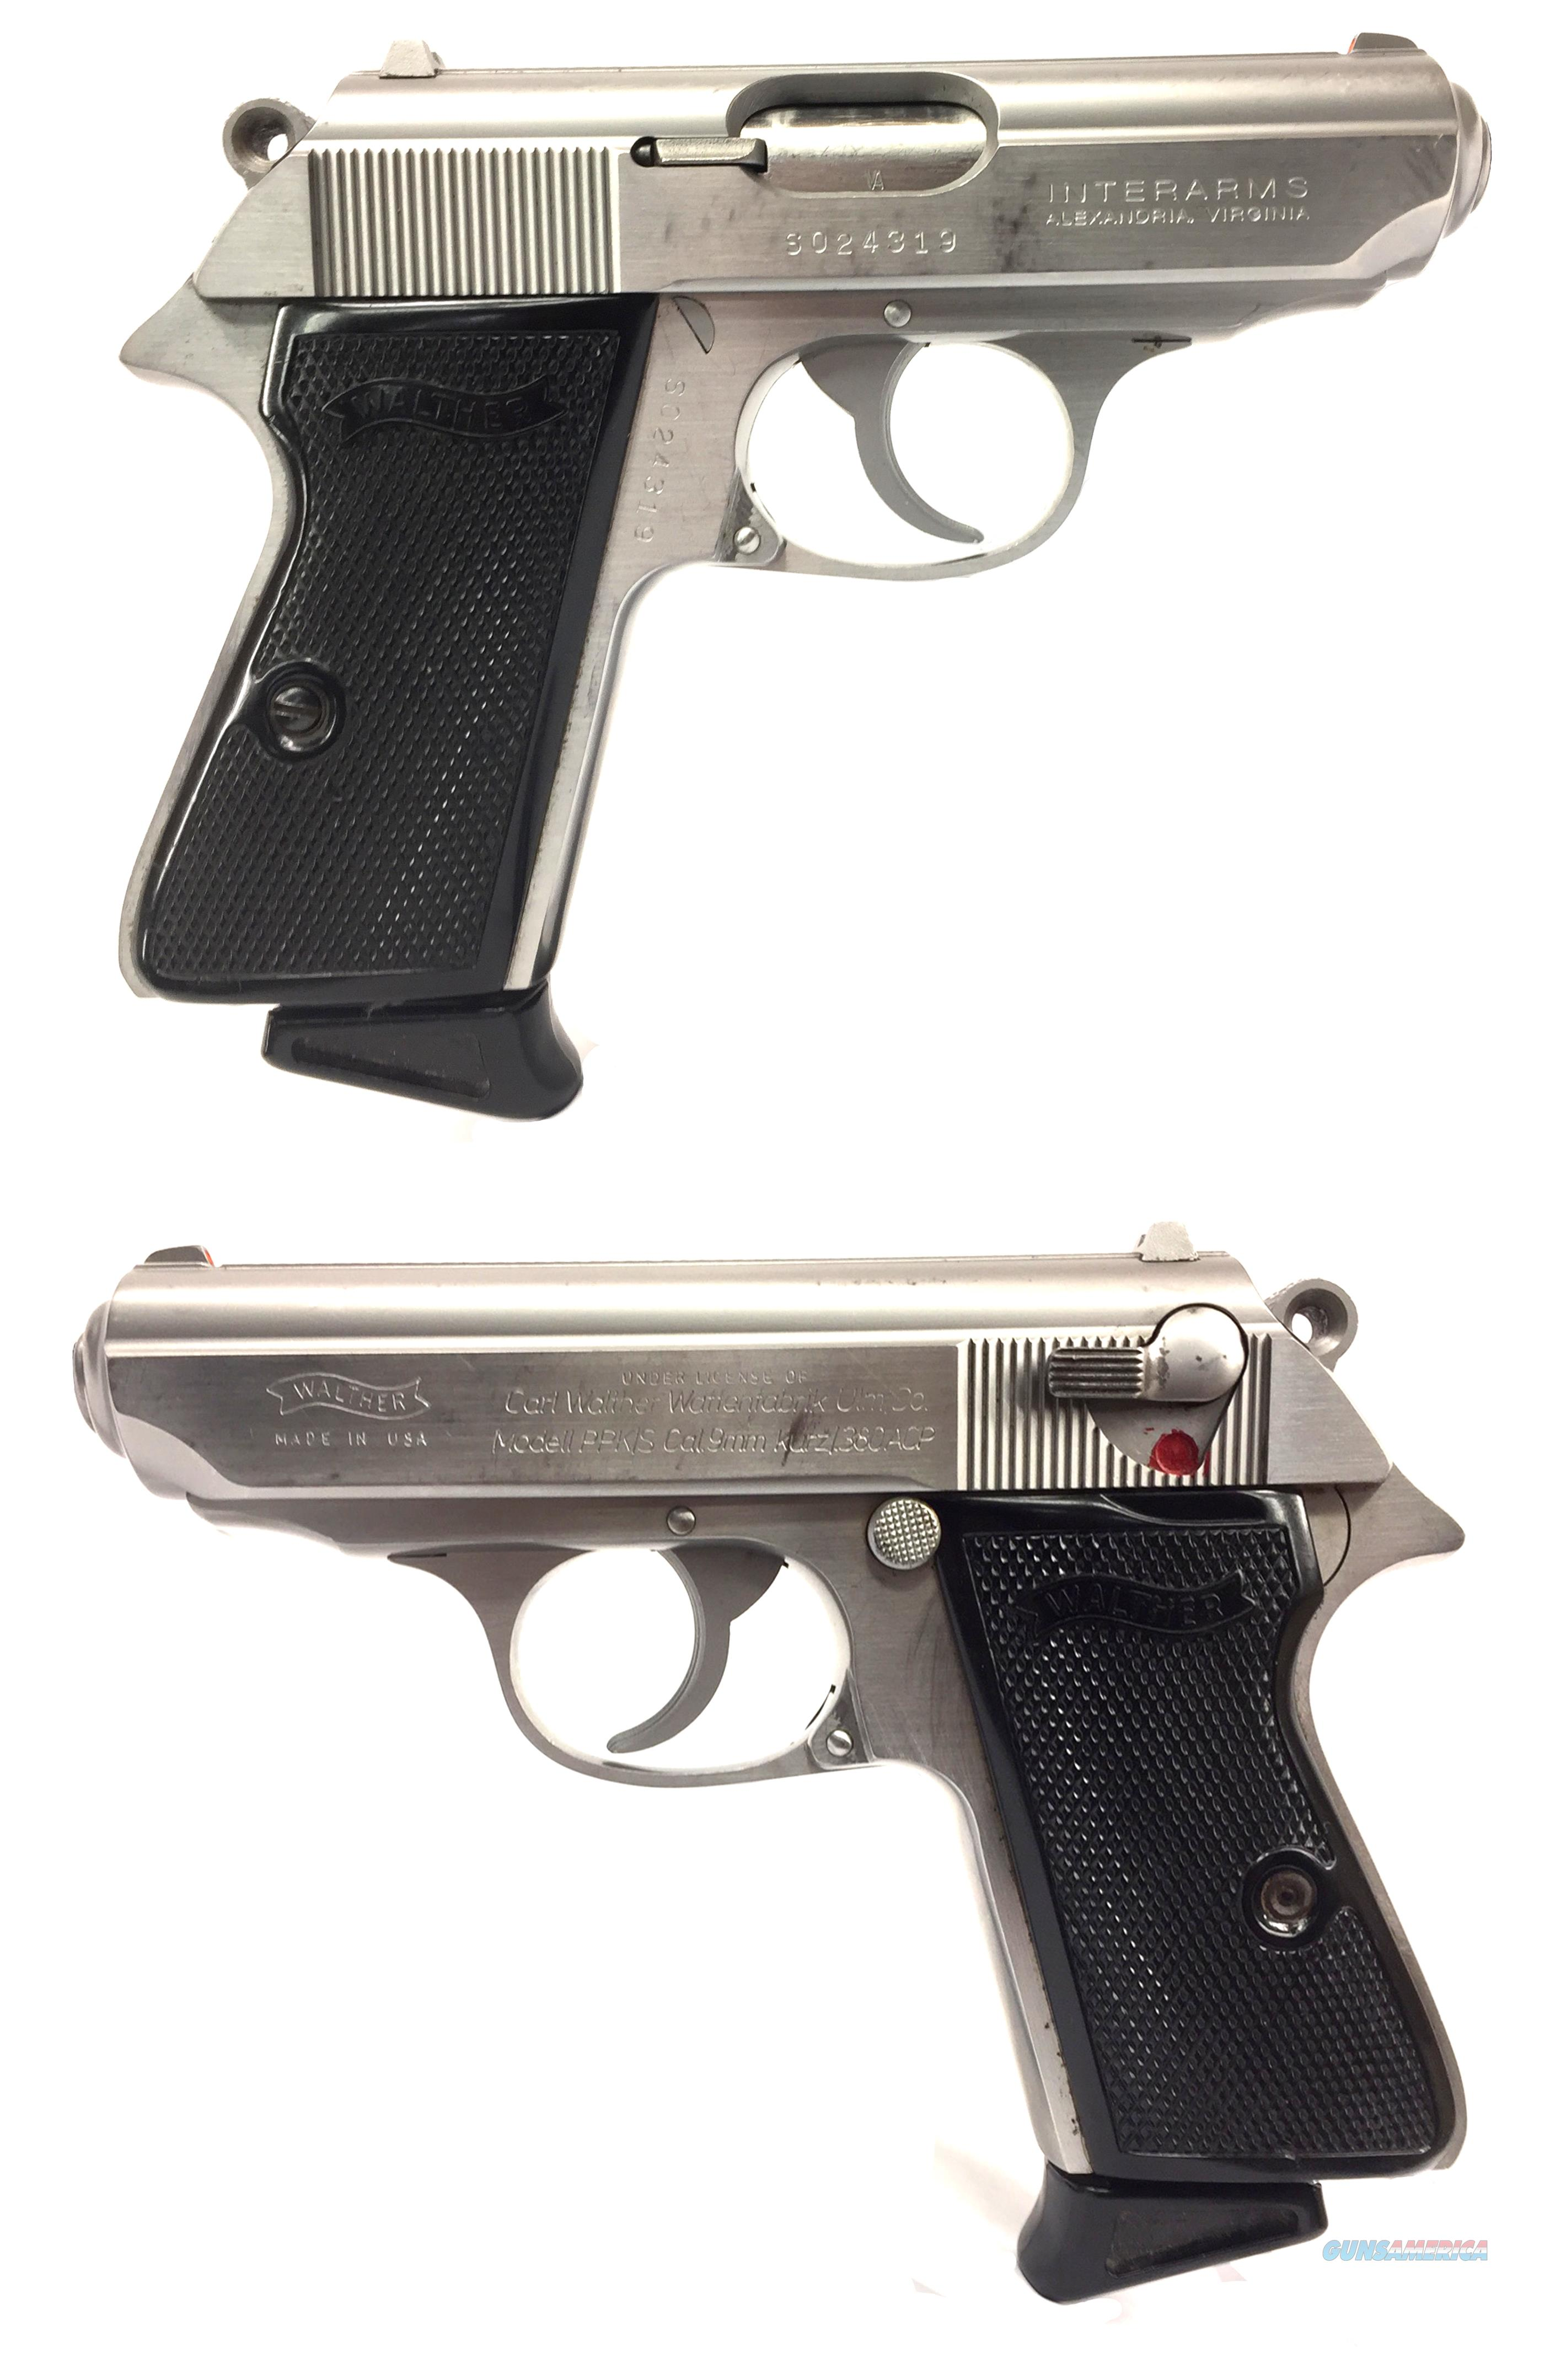 Walther-Interarms PPK/S .380   Guns > Pistols > Interarms Pistols